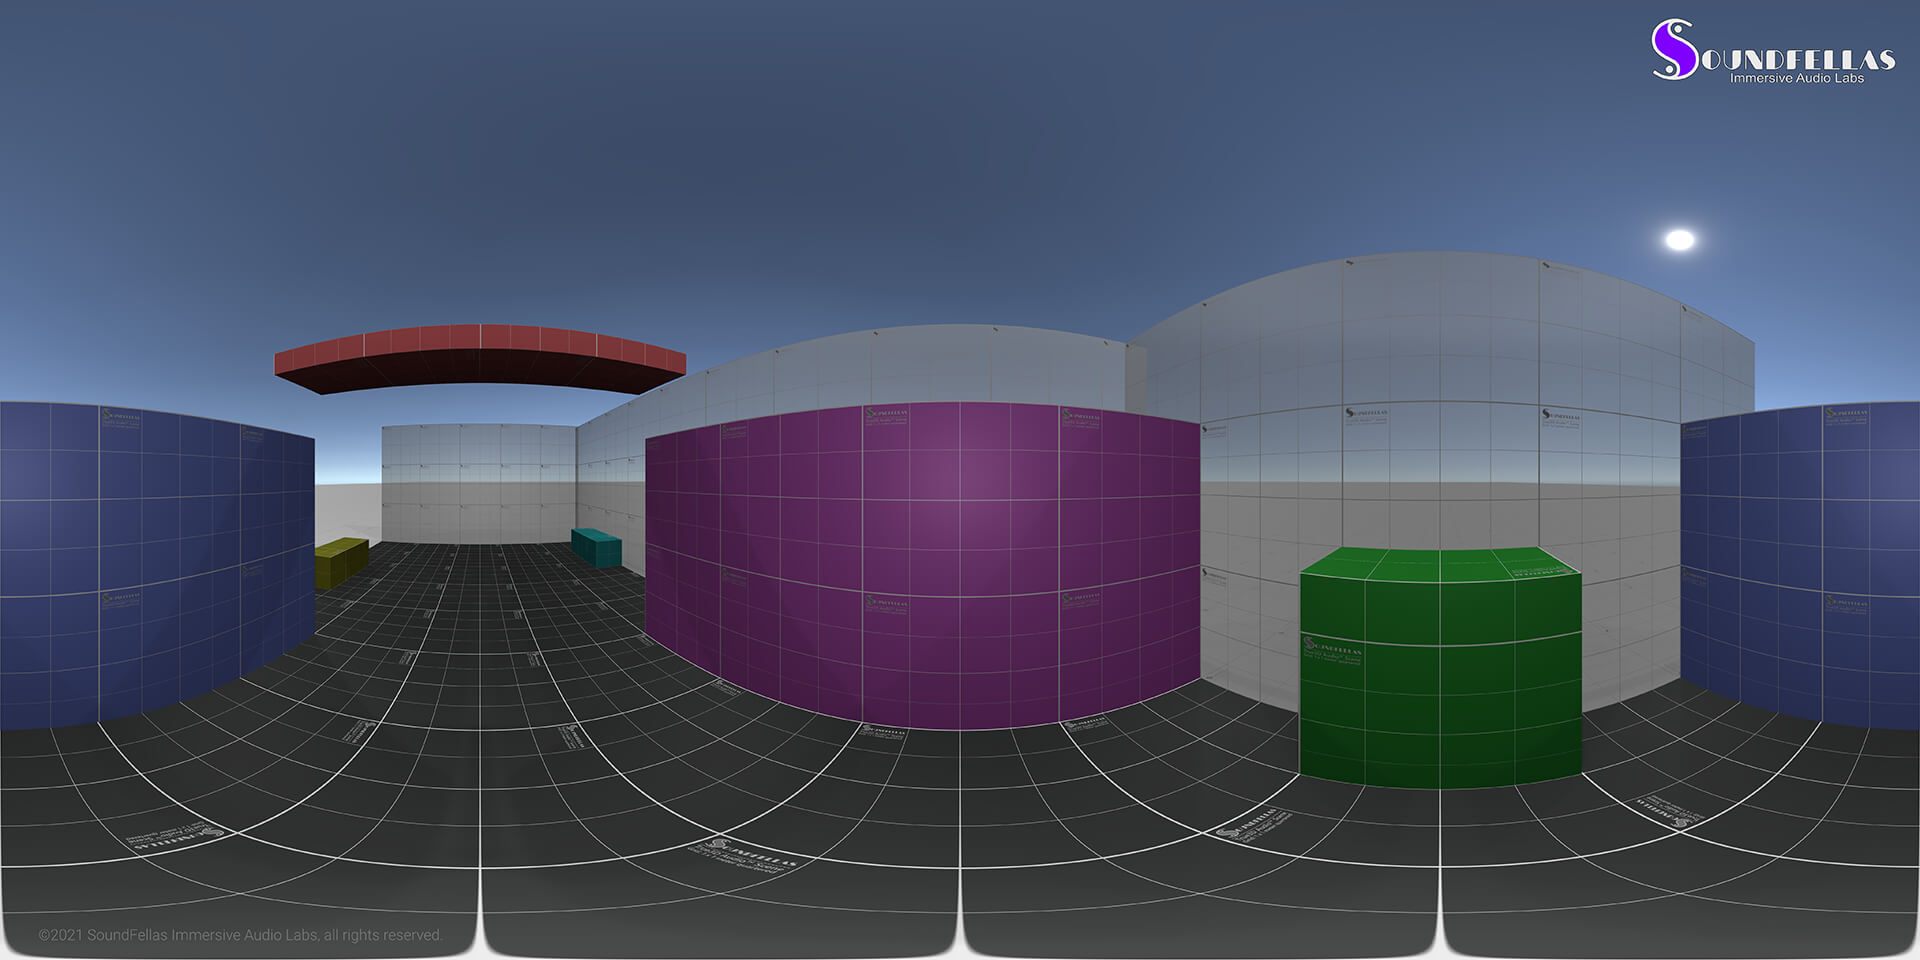 Image of Science Research Facilities and Labs Server Room Equirectangular Projection Web.